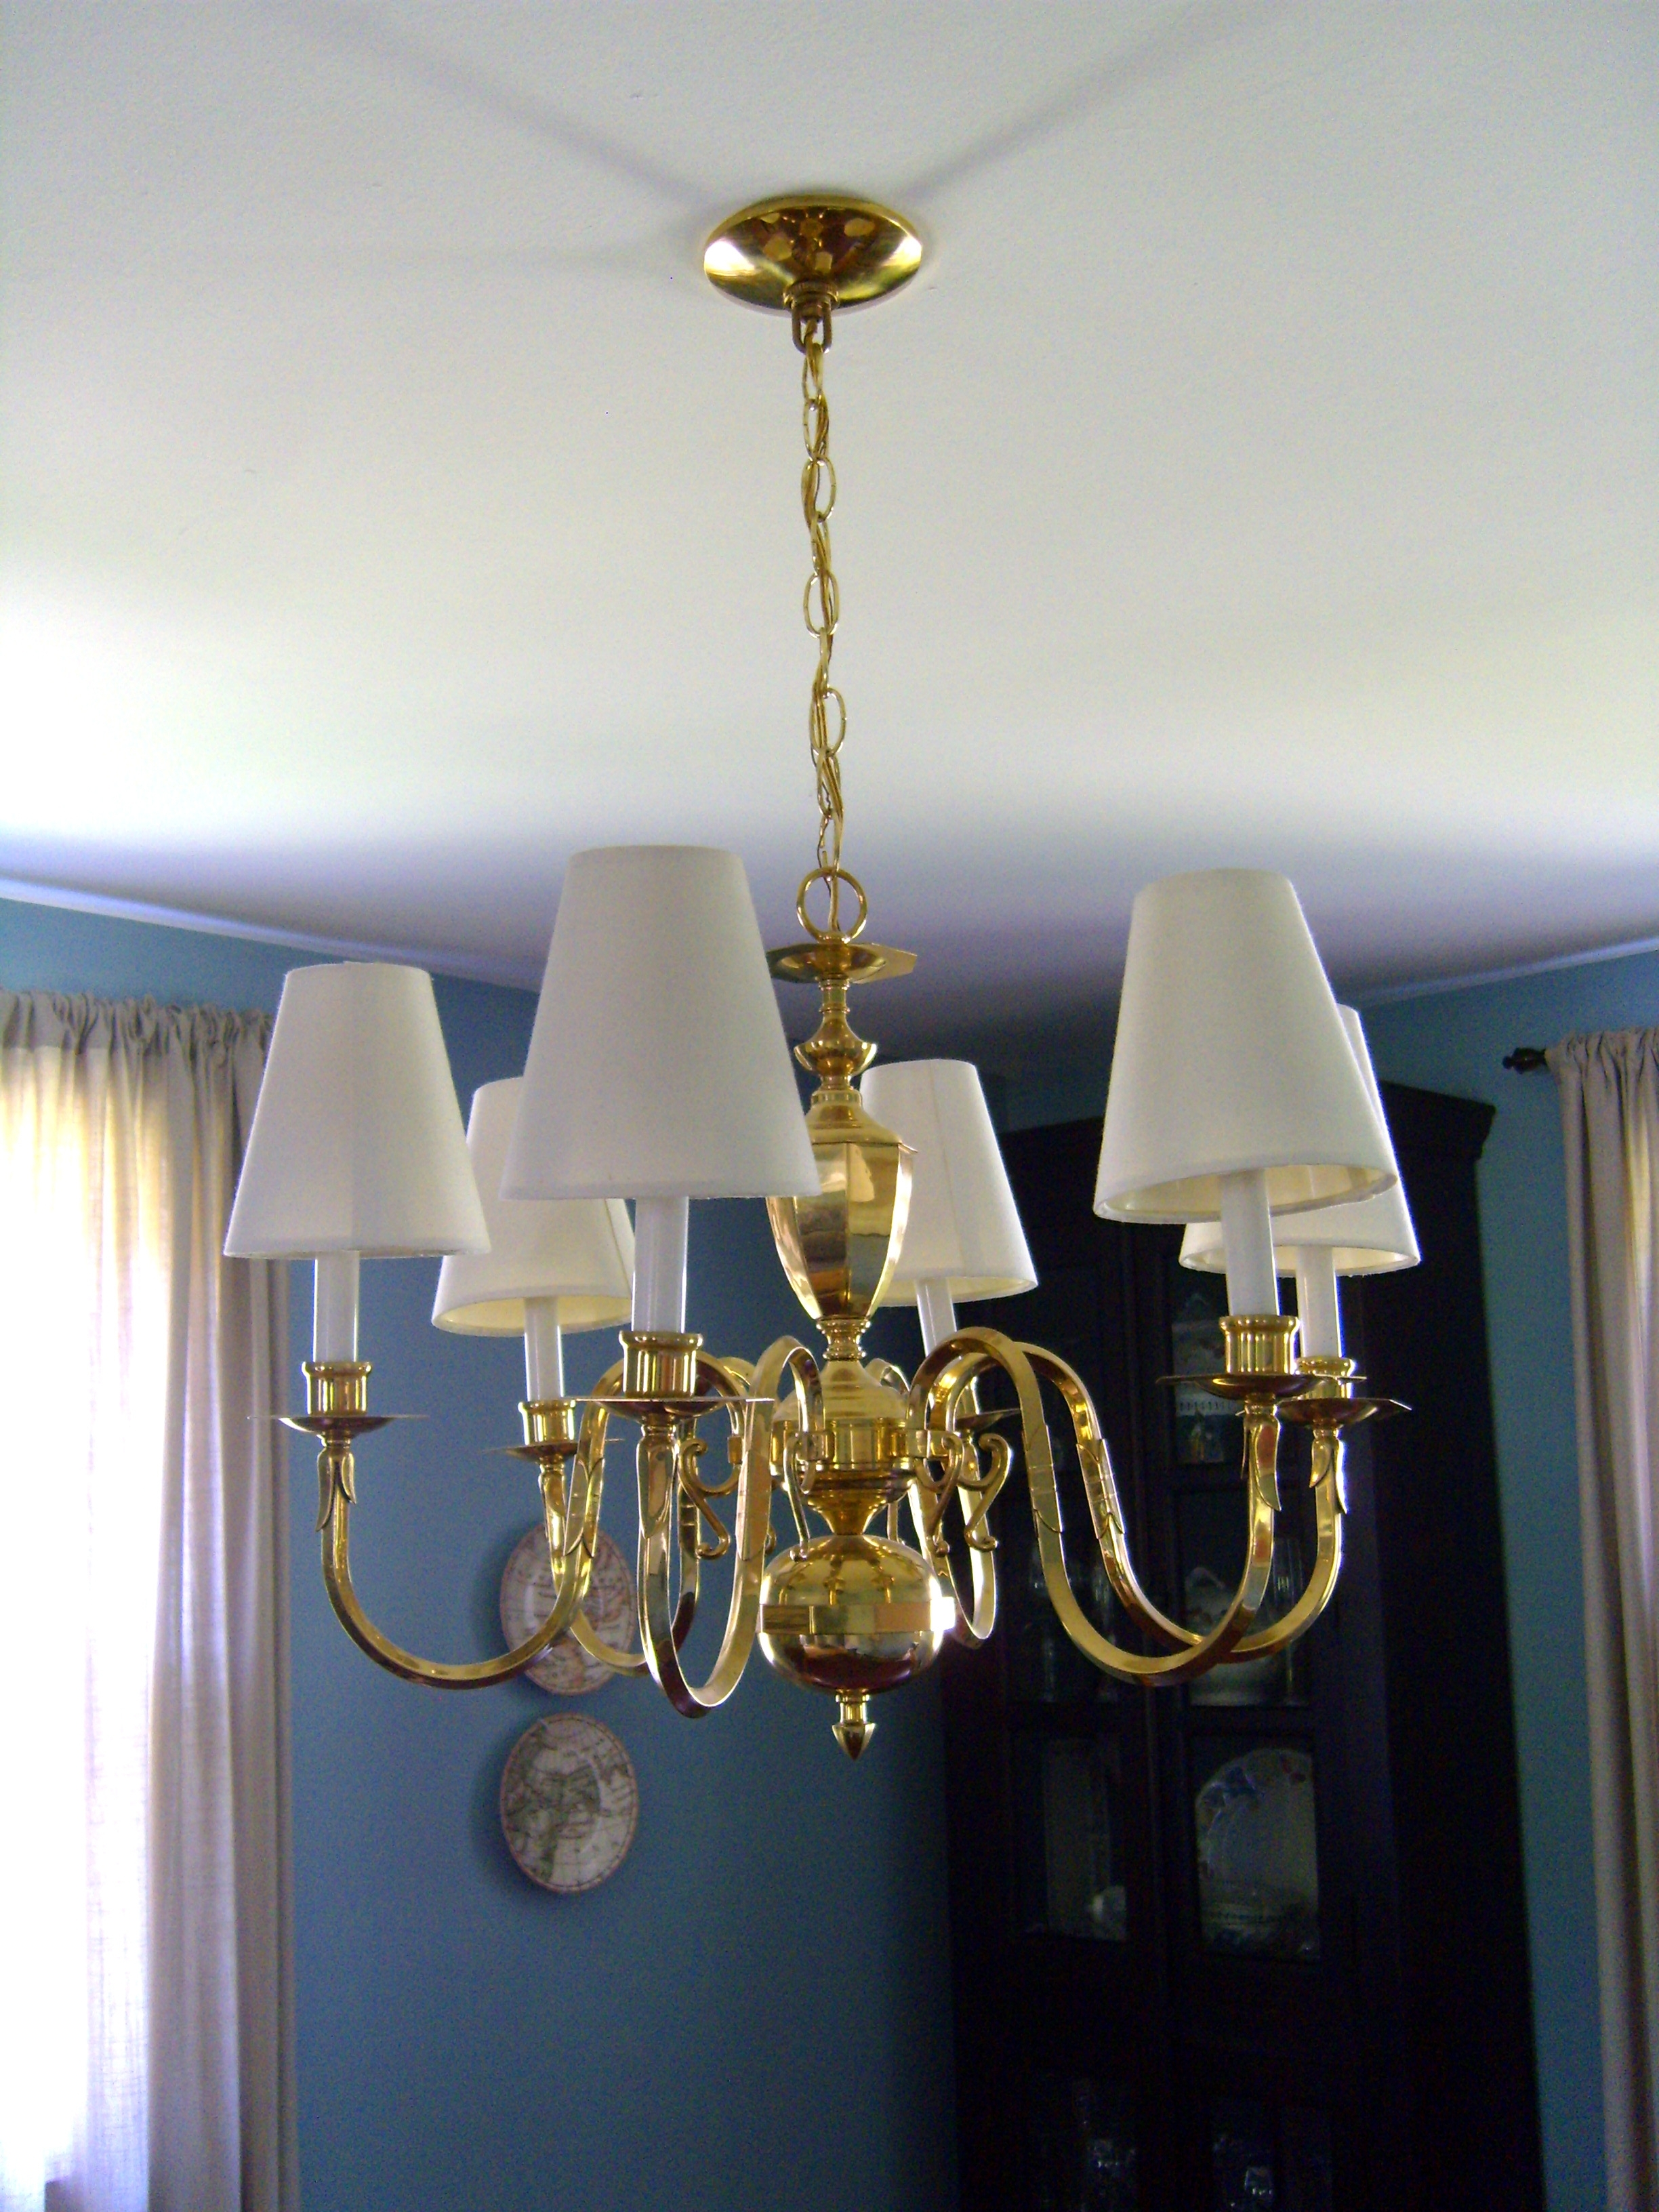 Chandelier Lamp Shades Drum Shape Tab Blackover Drumless Less Shade Intended For Famous Lampshades For Chandeliers (View 2 of 15)